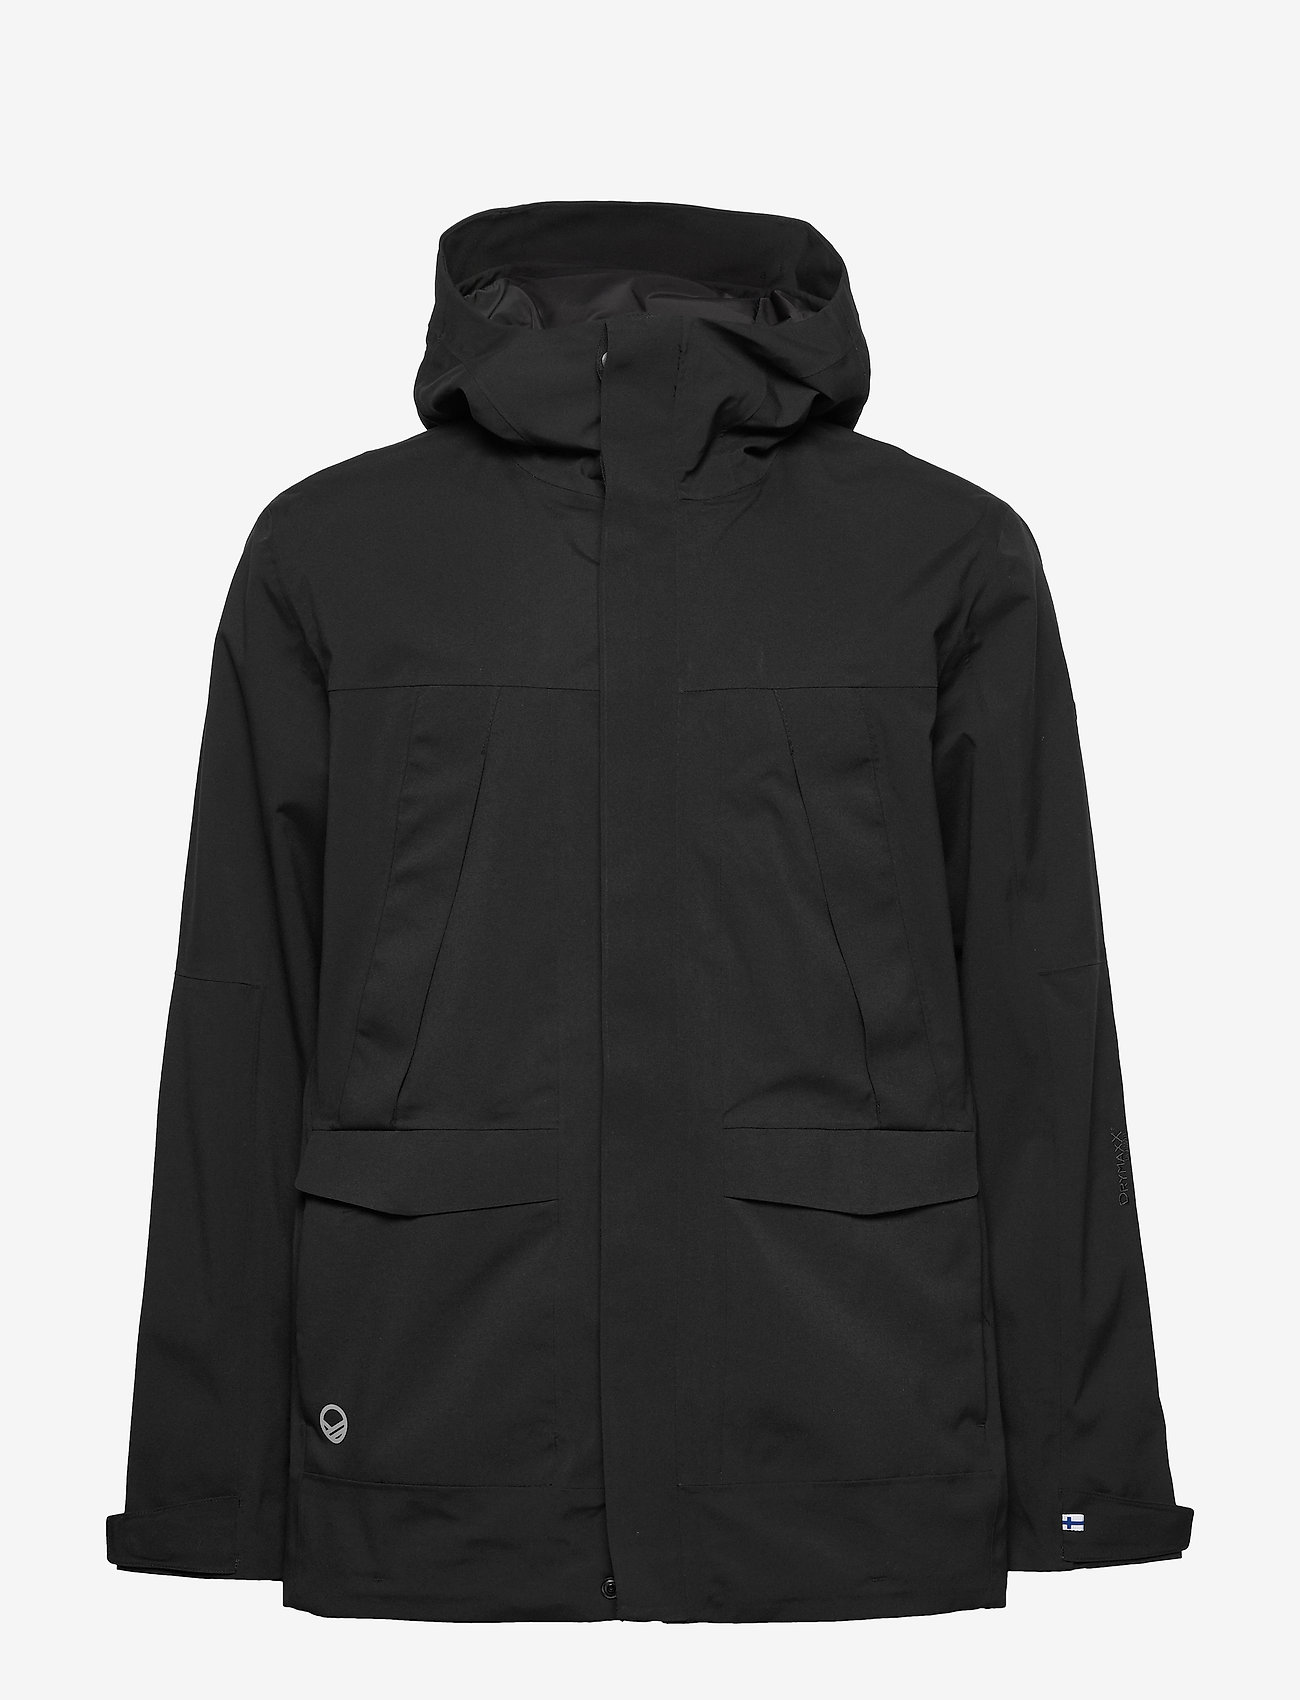 Hiker Next Generation Men's Drymaxx Shell Jacket (Black) (124.50 €) - Halti BJiv1